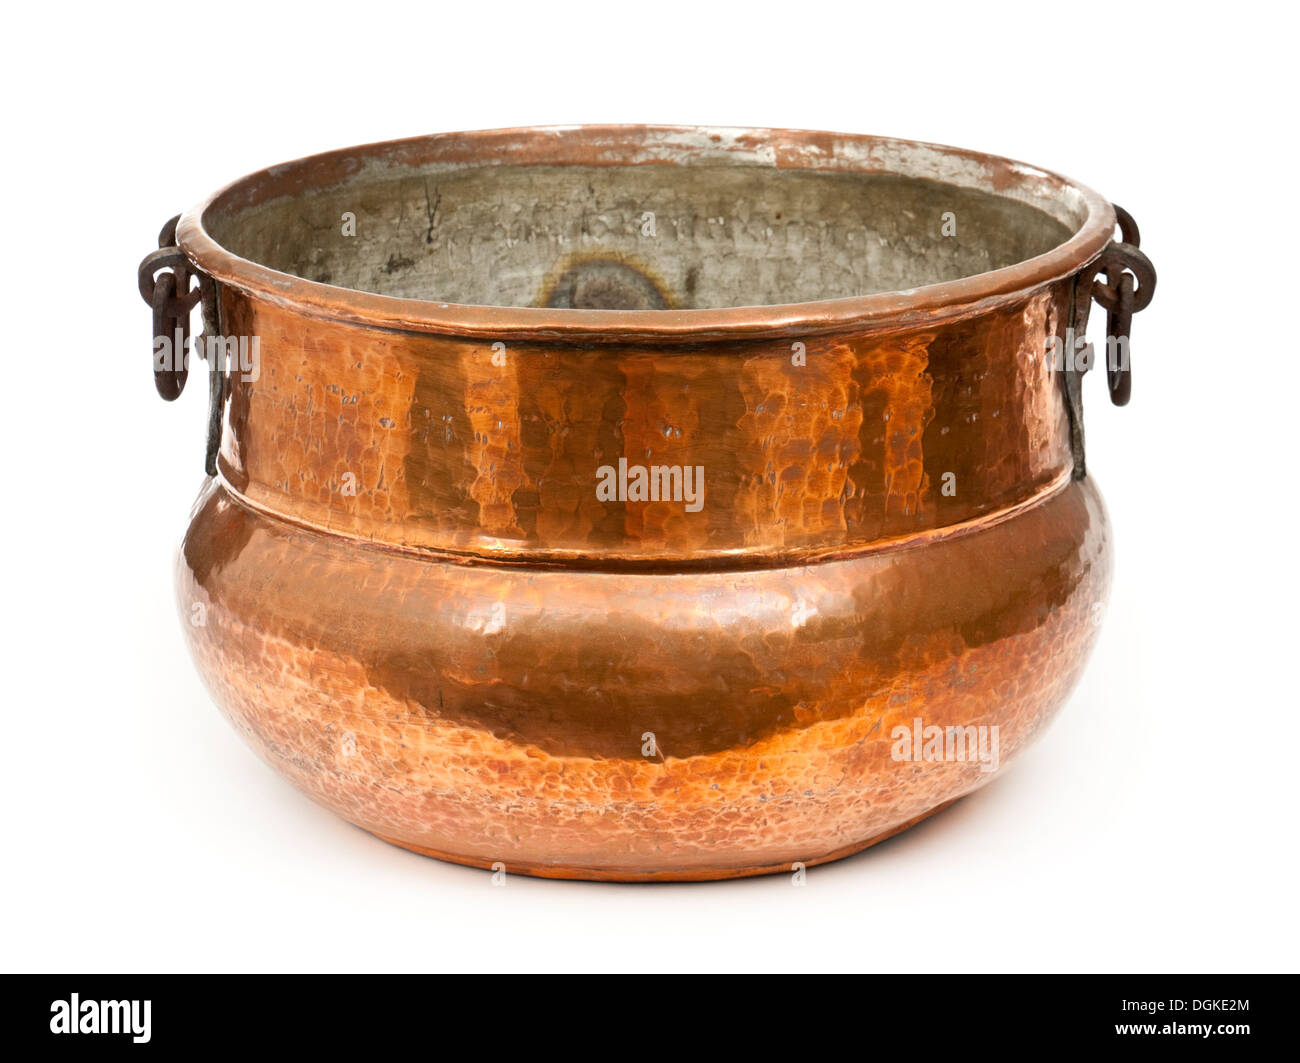 Antique copper cooking pot Stock Photo, Royalty Free Image ...